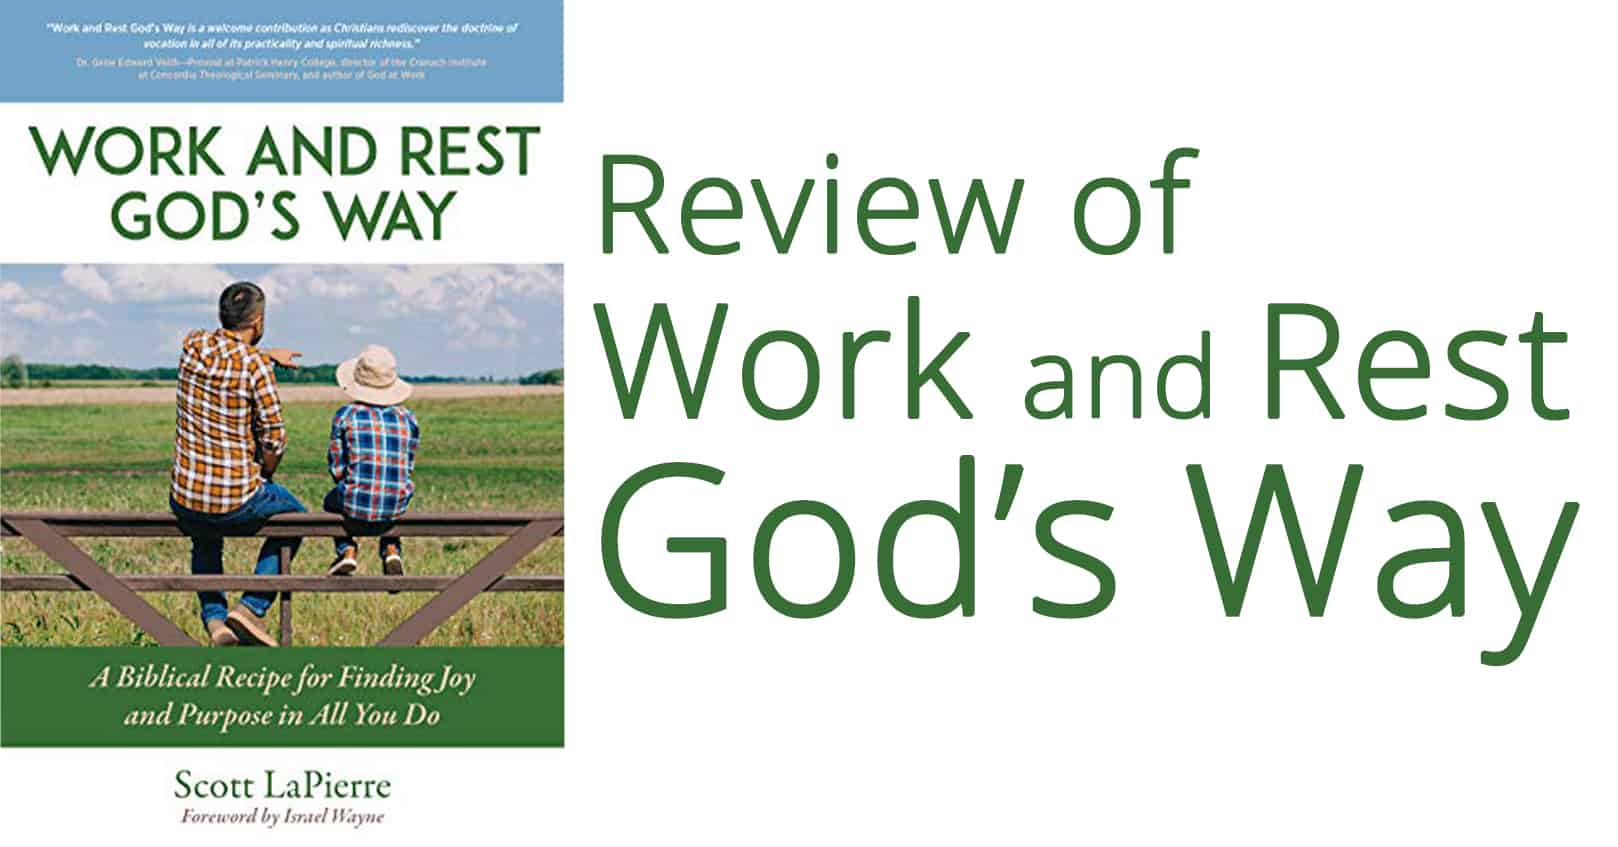 Review of Work and Rest God's Way